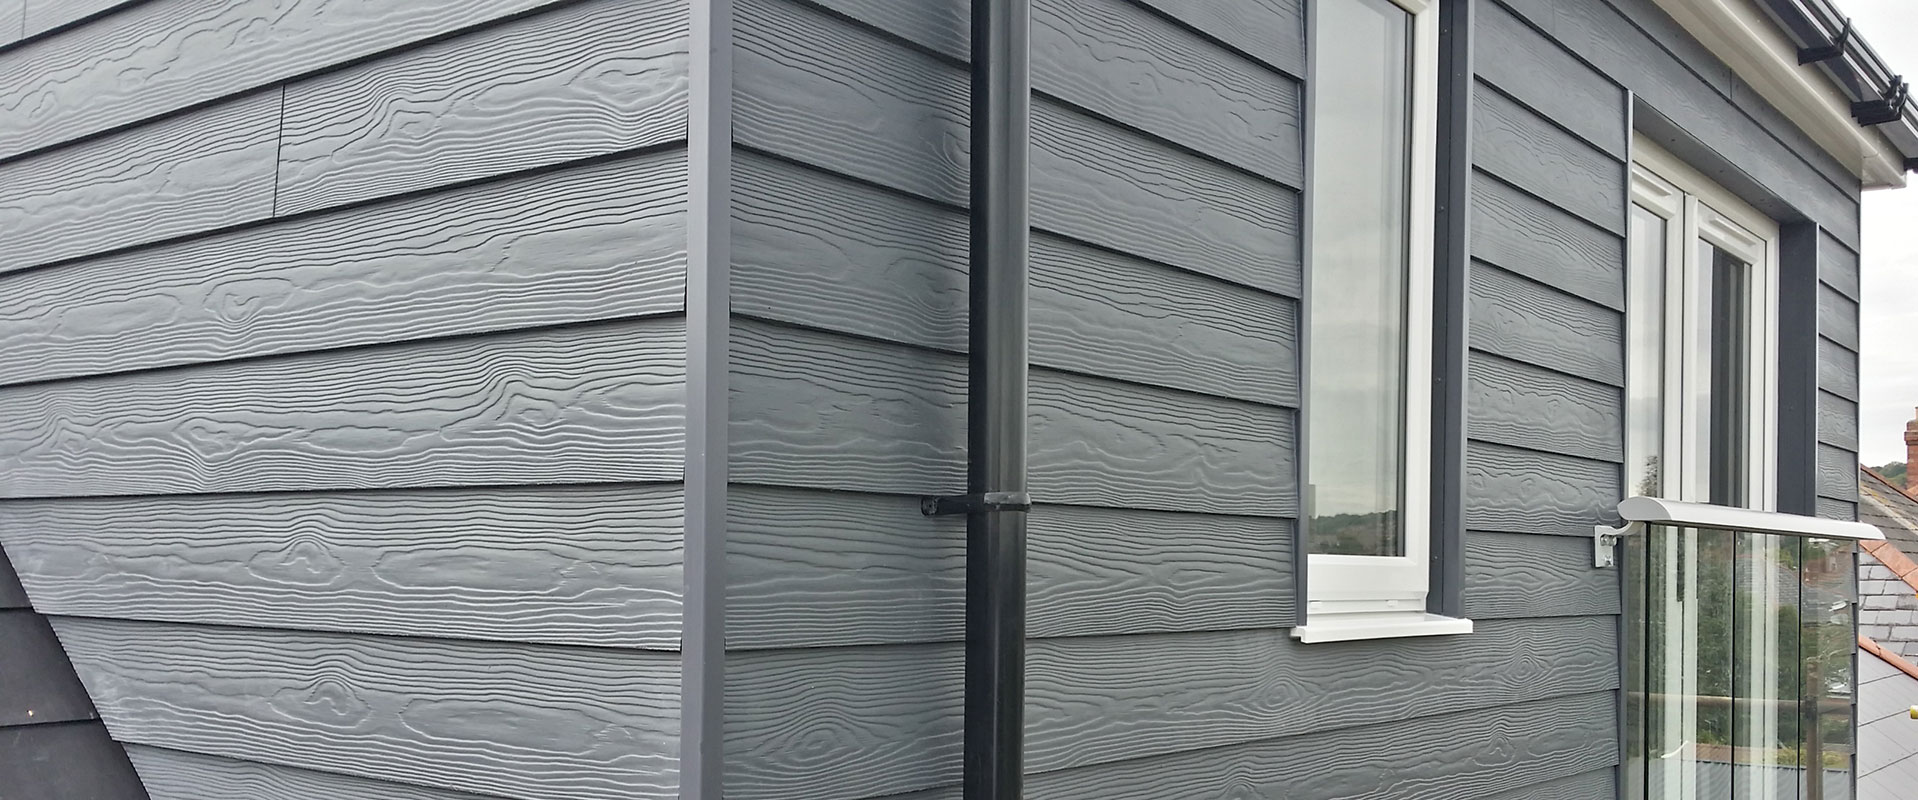 Roofline Slide 2